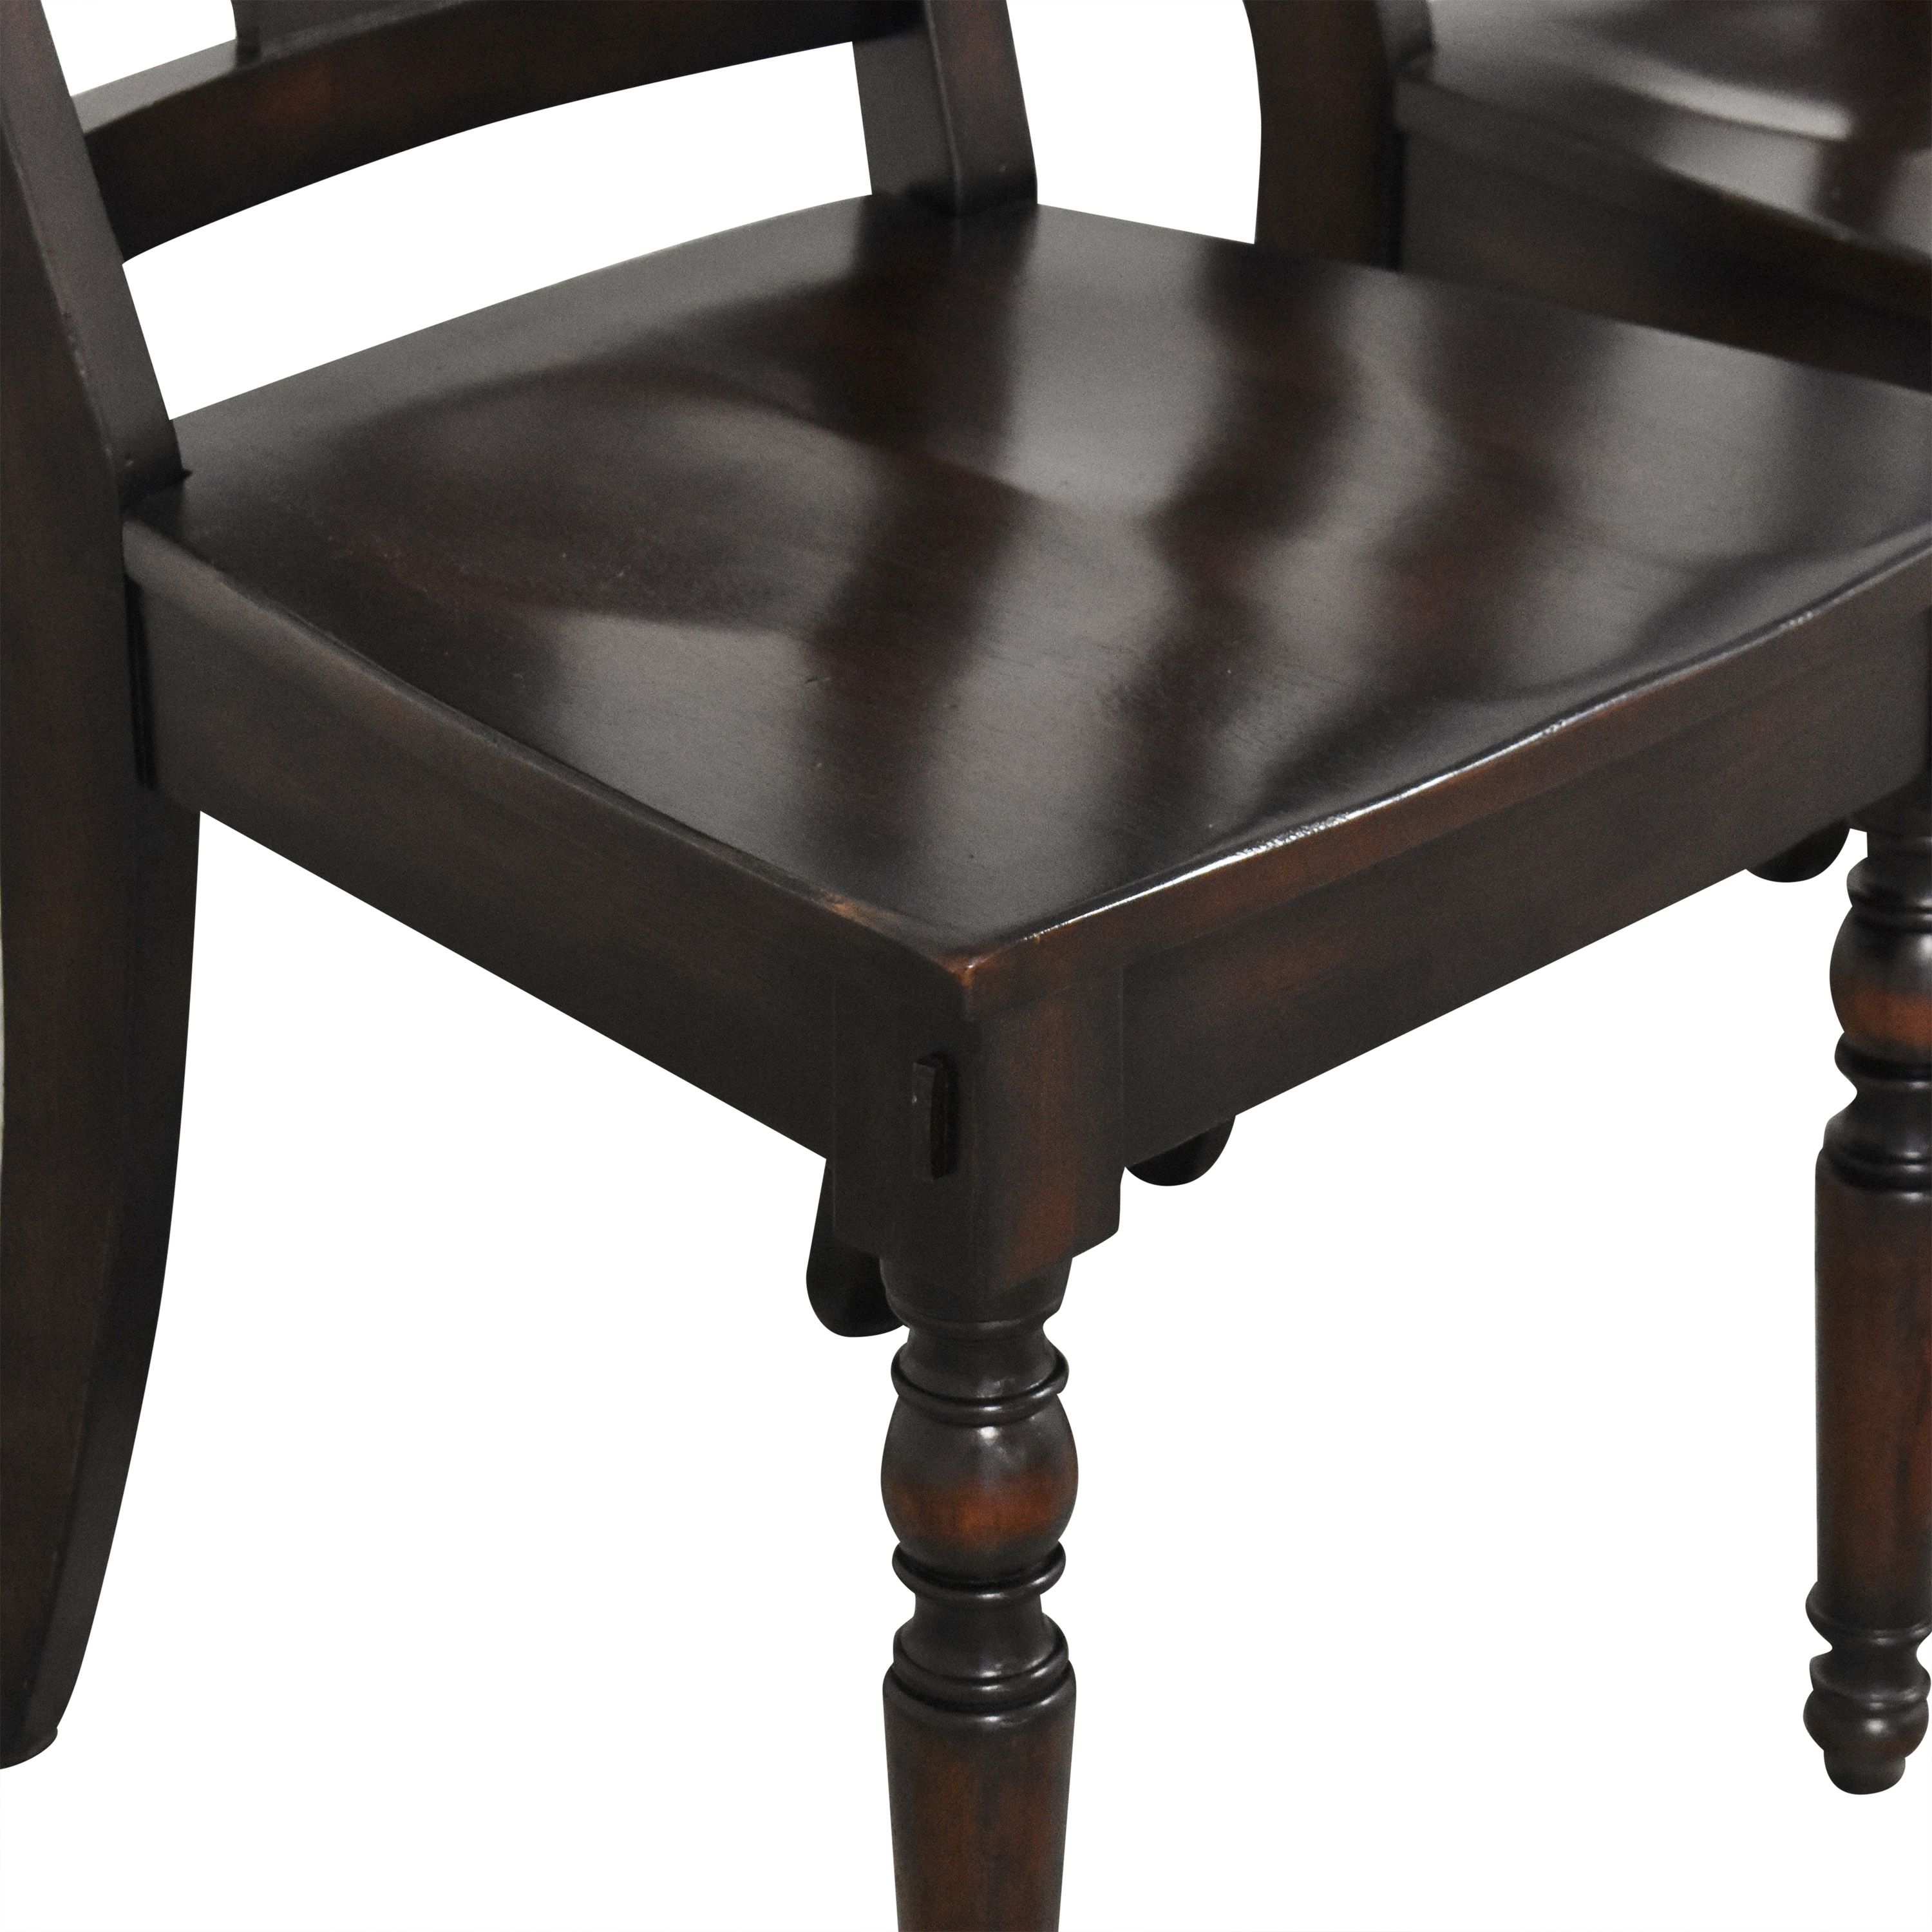 buy Pottery Barn Dining Chairs Pottery Barn